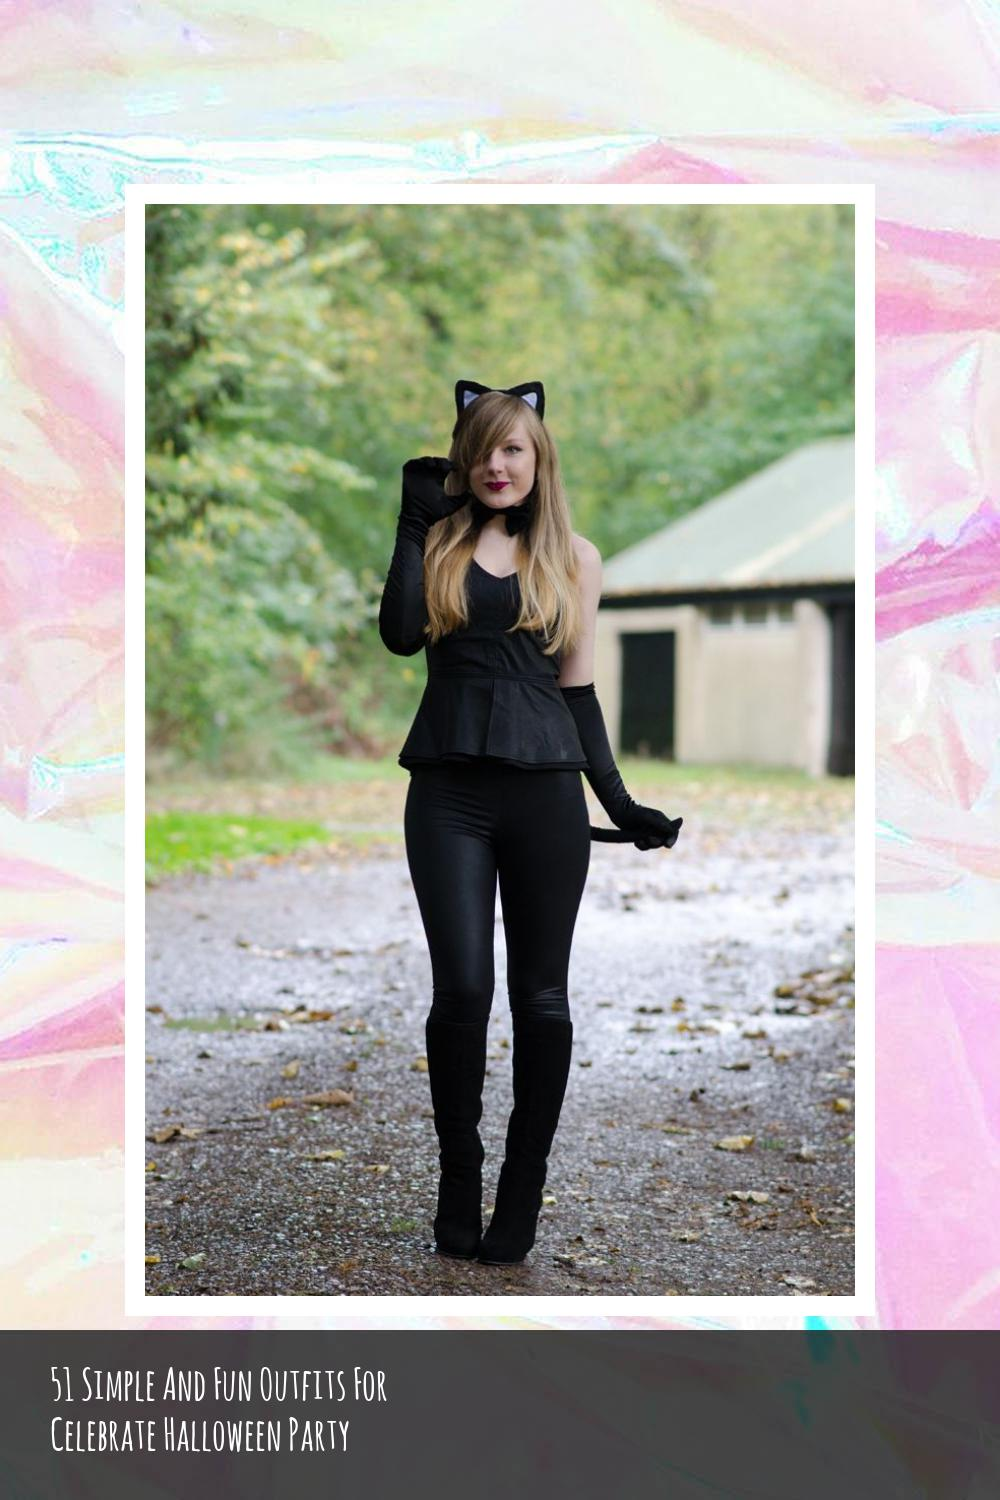 51 Simple And Fun Outfits For Celebrate Halloween Party 29